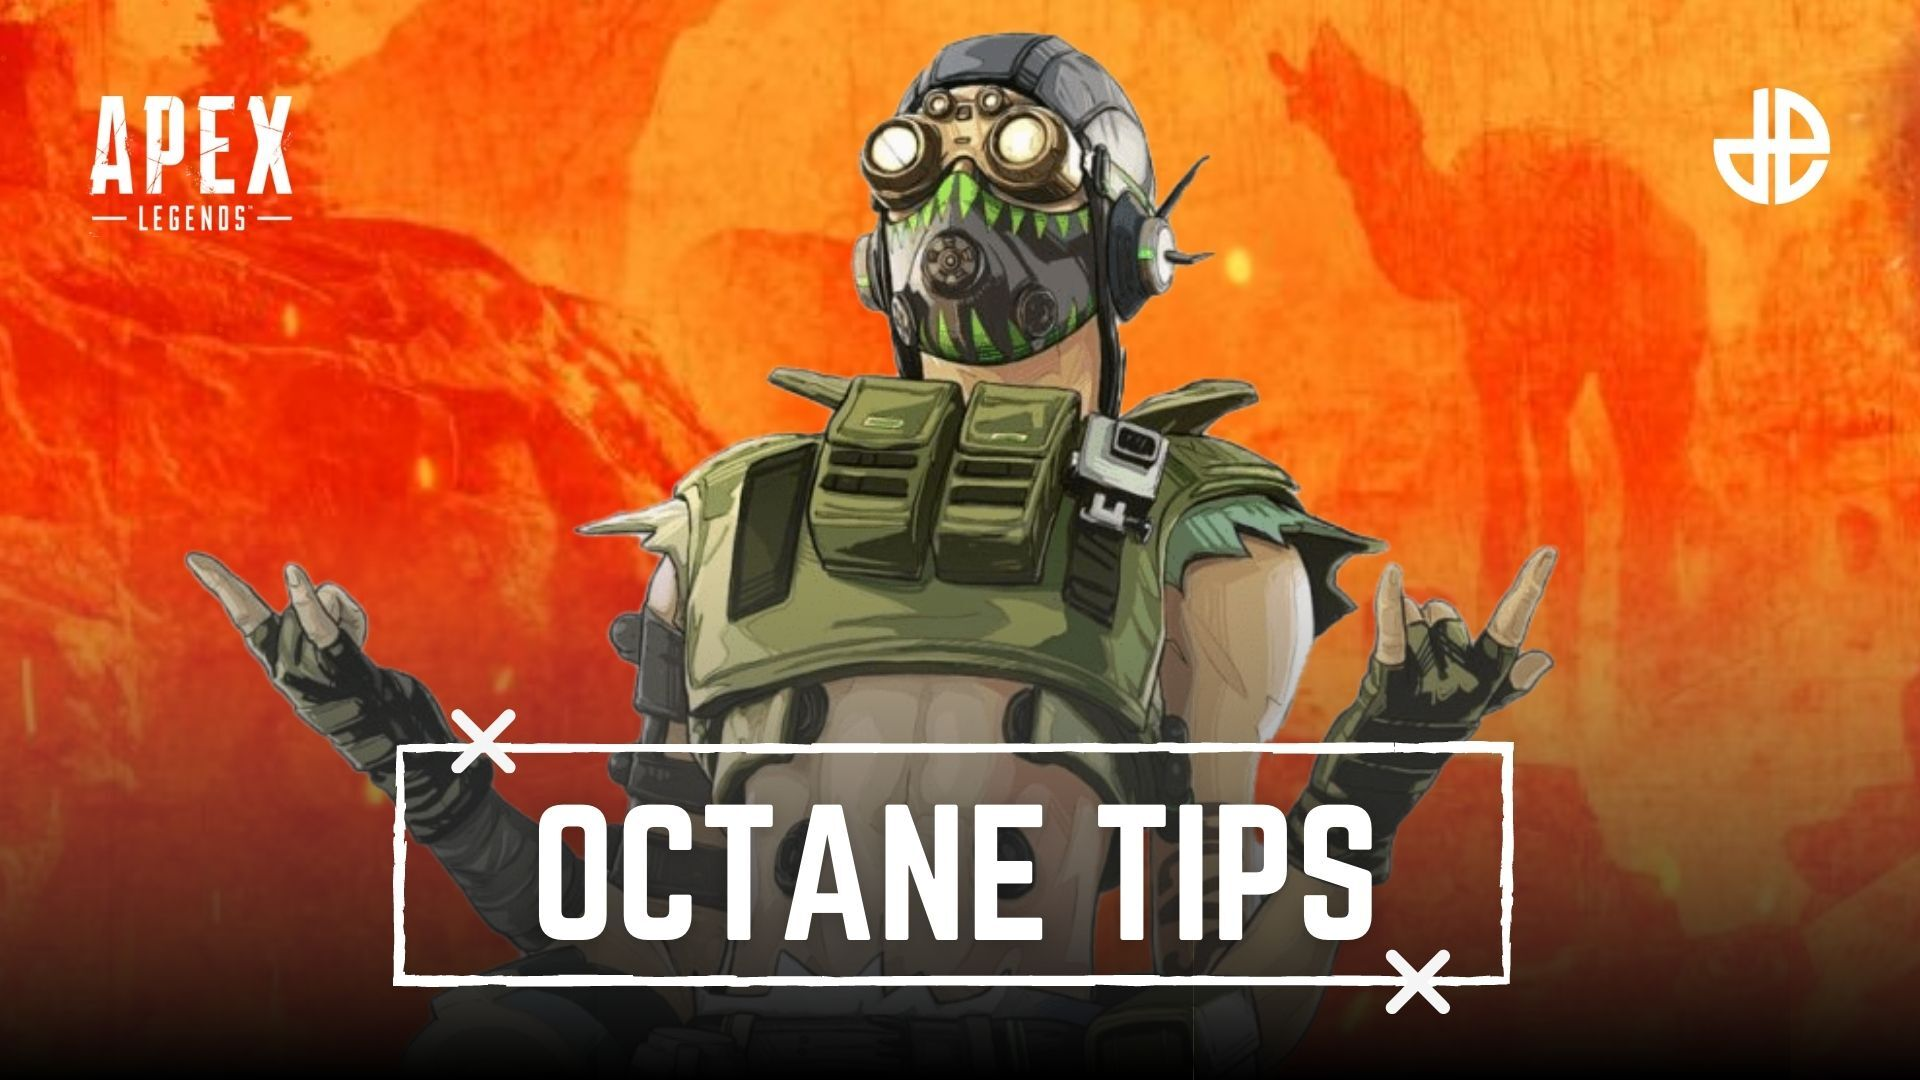 Octane tips